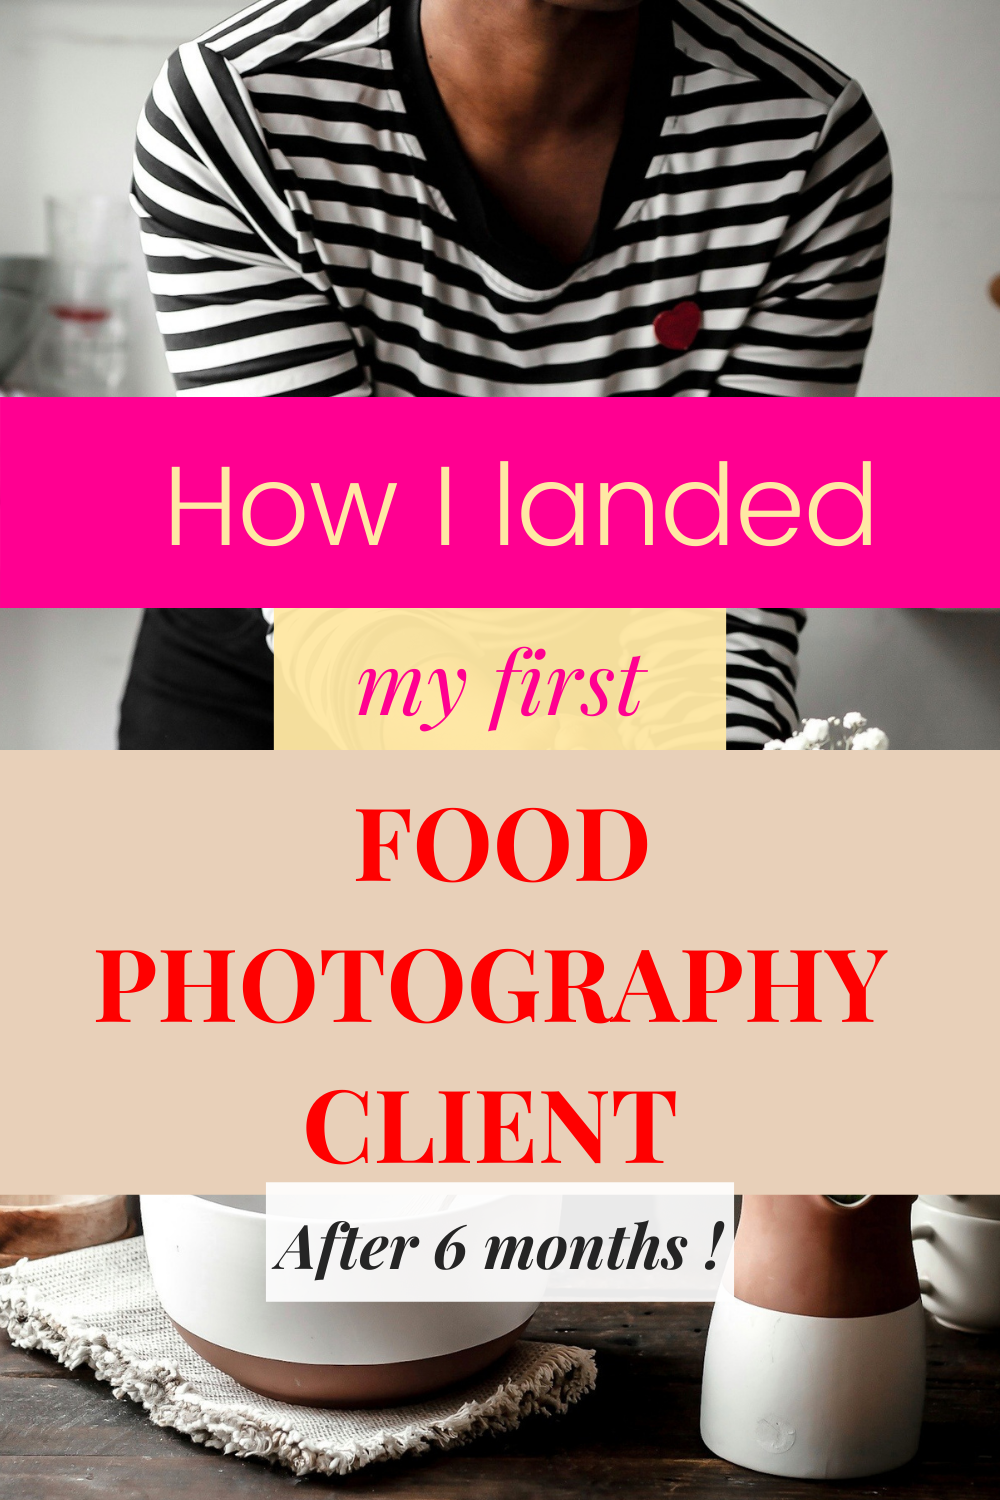 How to get paid for food photography after  6 months